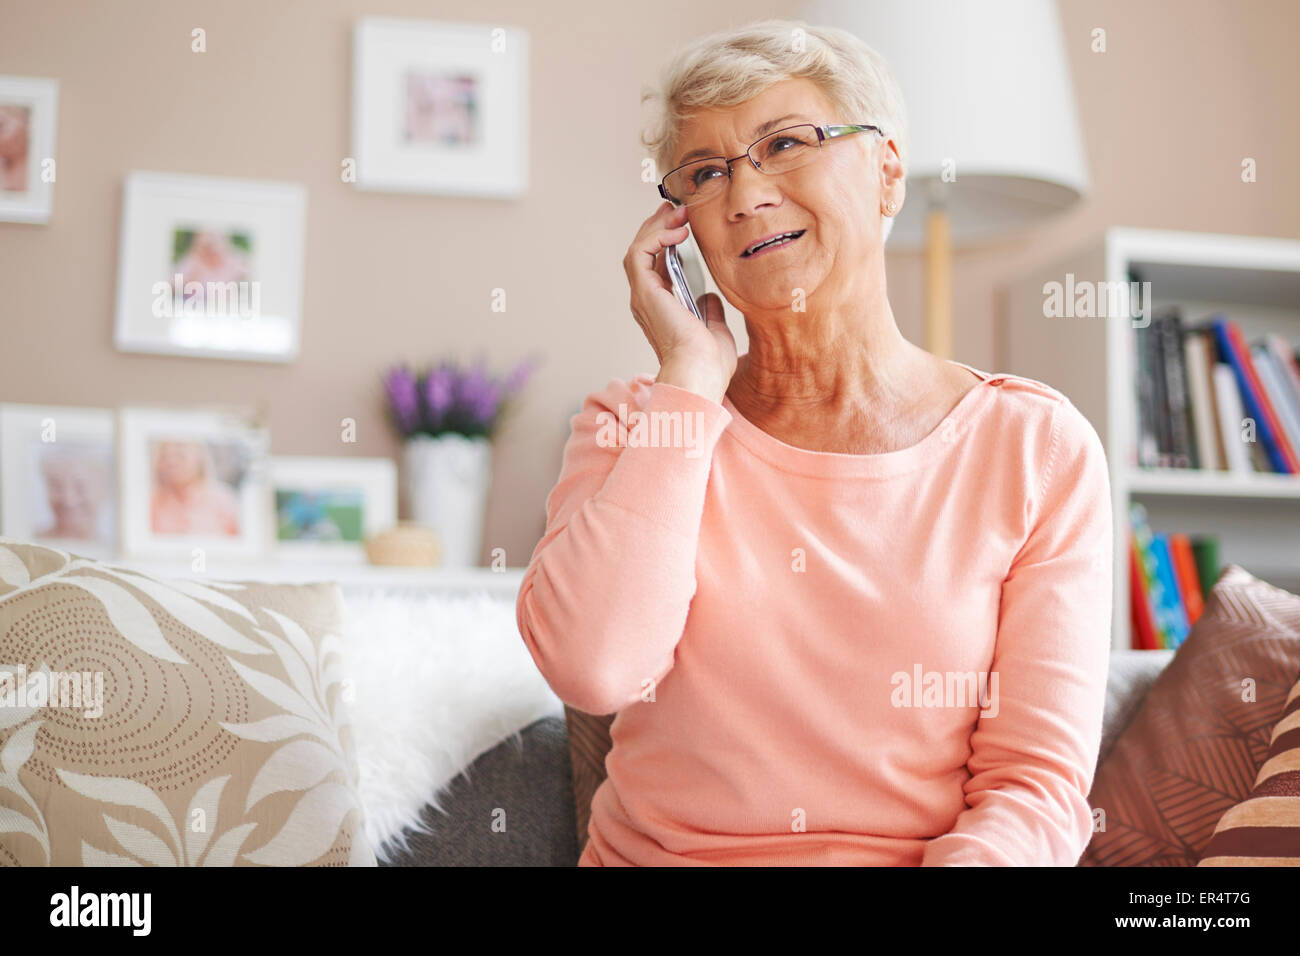 Senior woman keeping up to date with contemporary technology. Debica, Poland - Stock Image